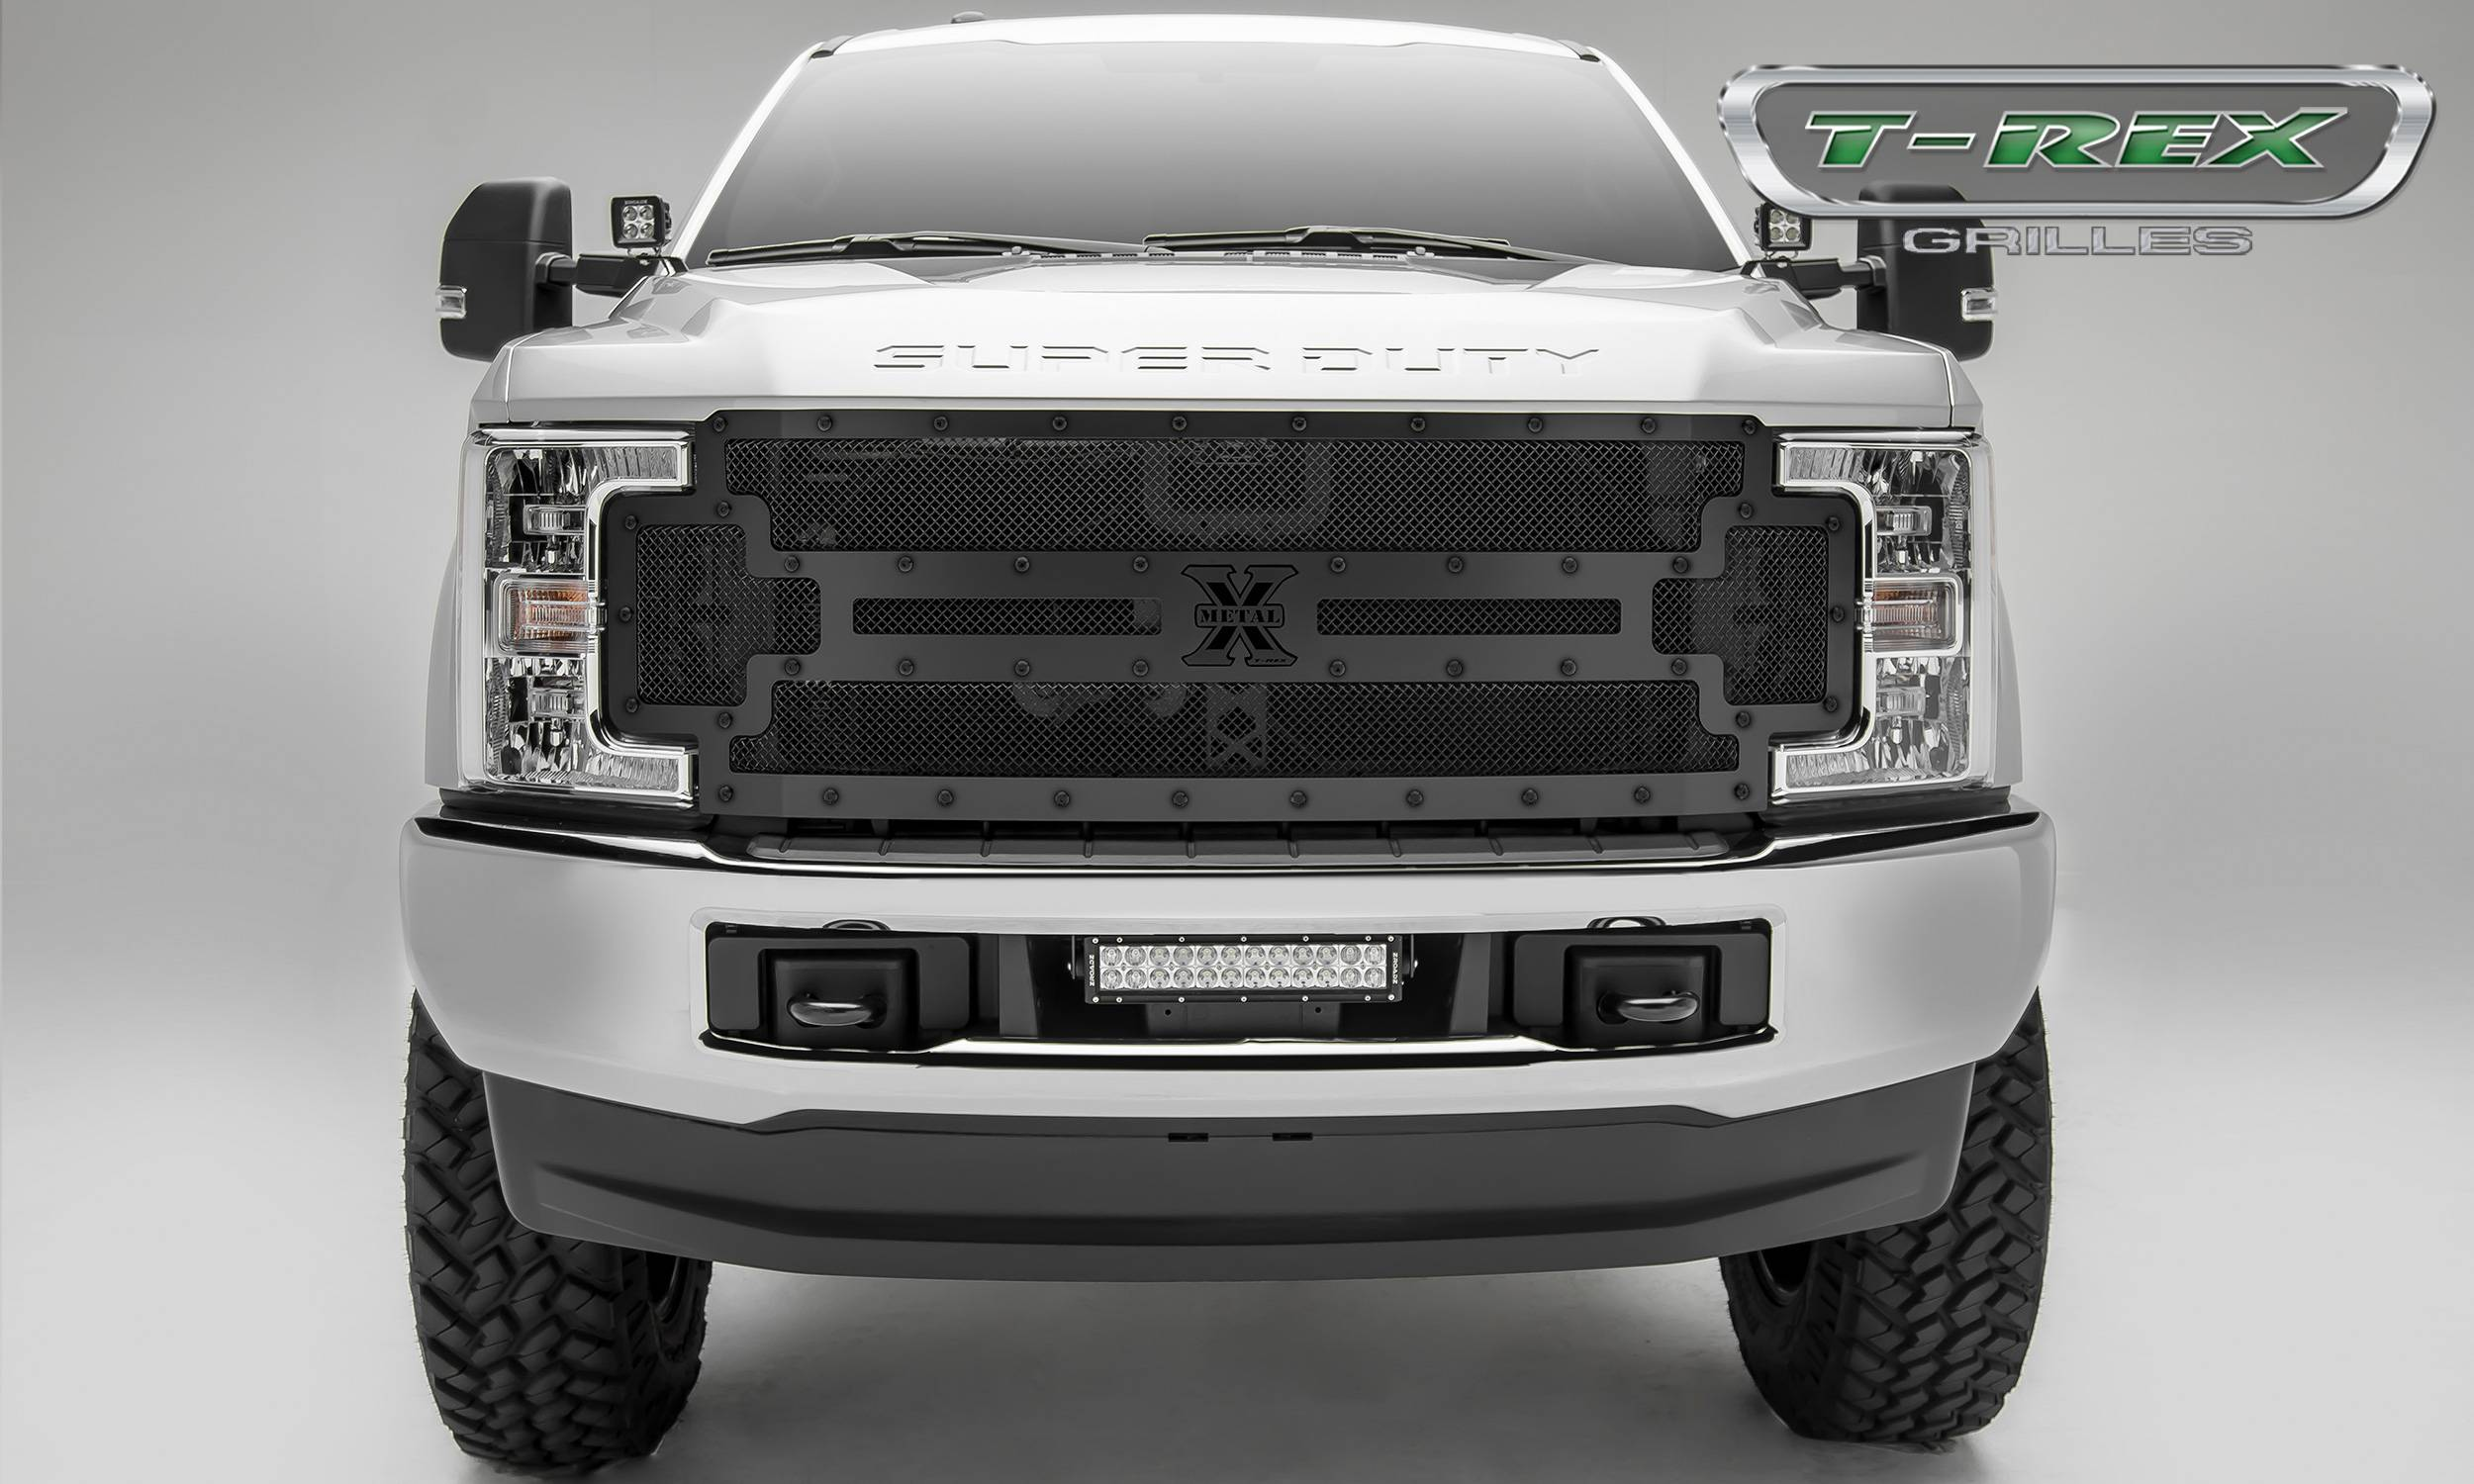 T-REX Grilles - T-REX Ford F-250 / F-350 Super Duty - STEALTH METAL - Main Replacement Grille - Steel Frame w/ Wire Mesh  - Pt # 6715471-BR